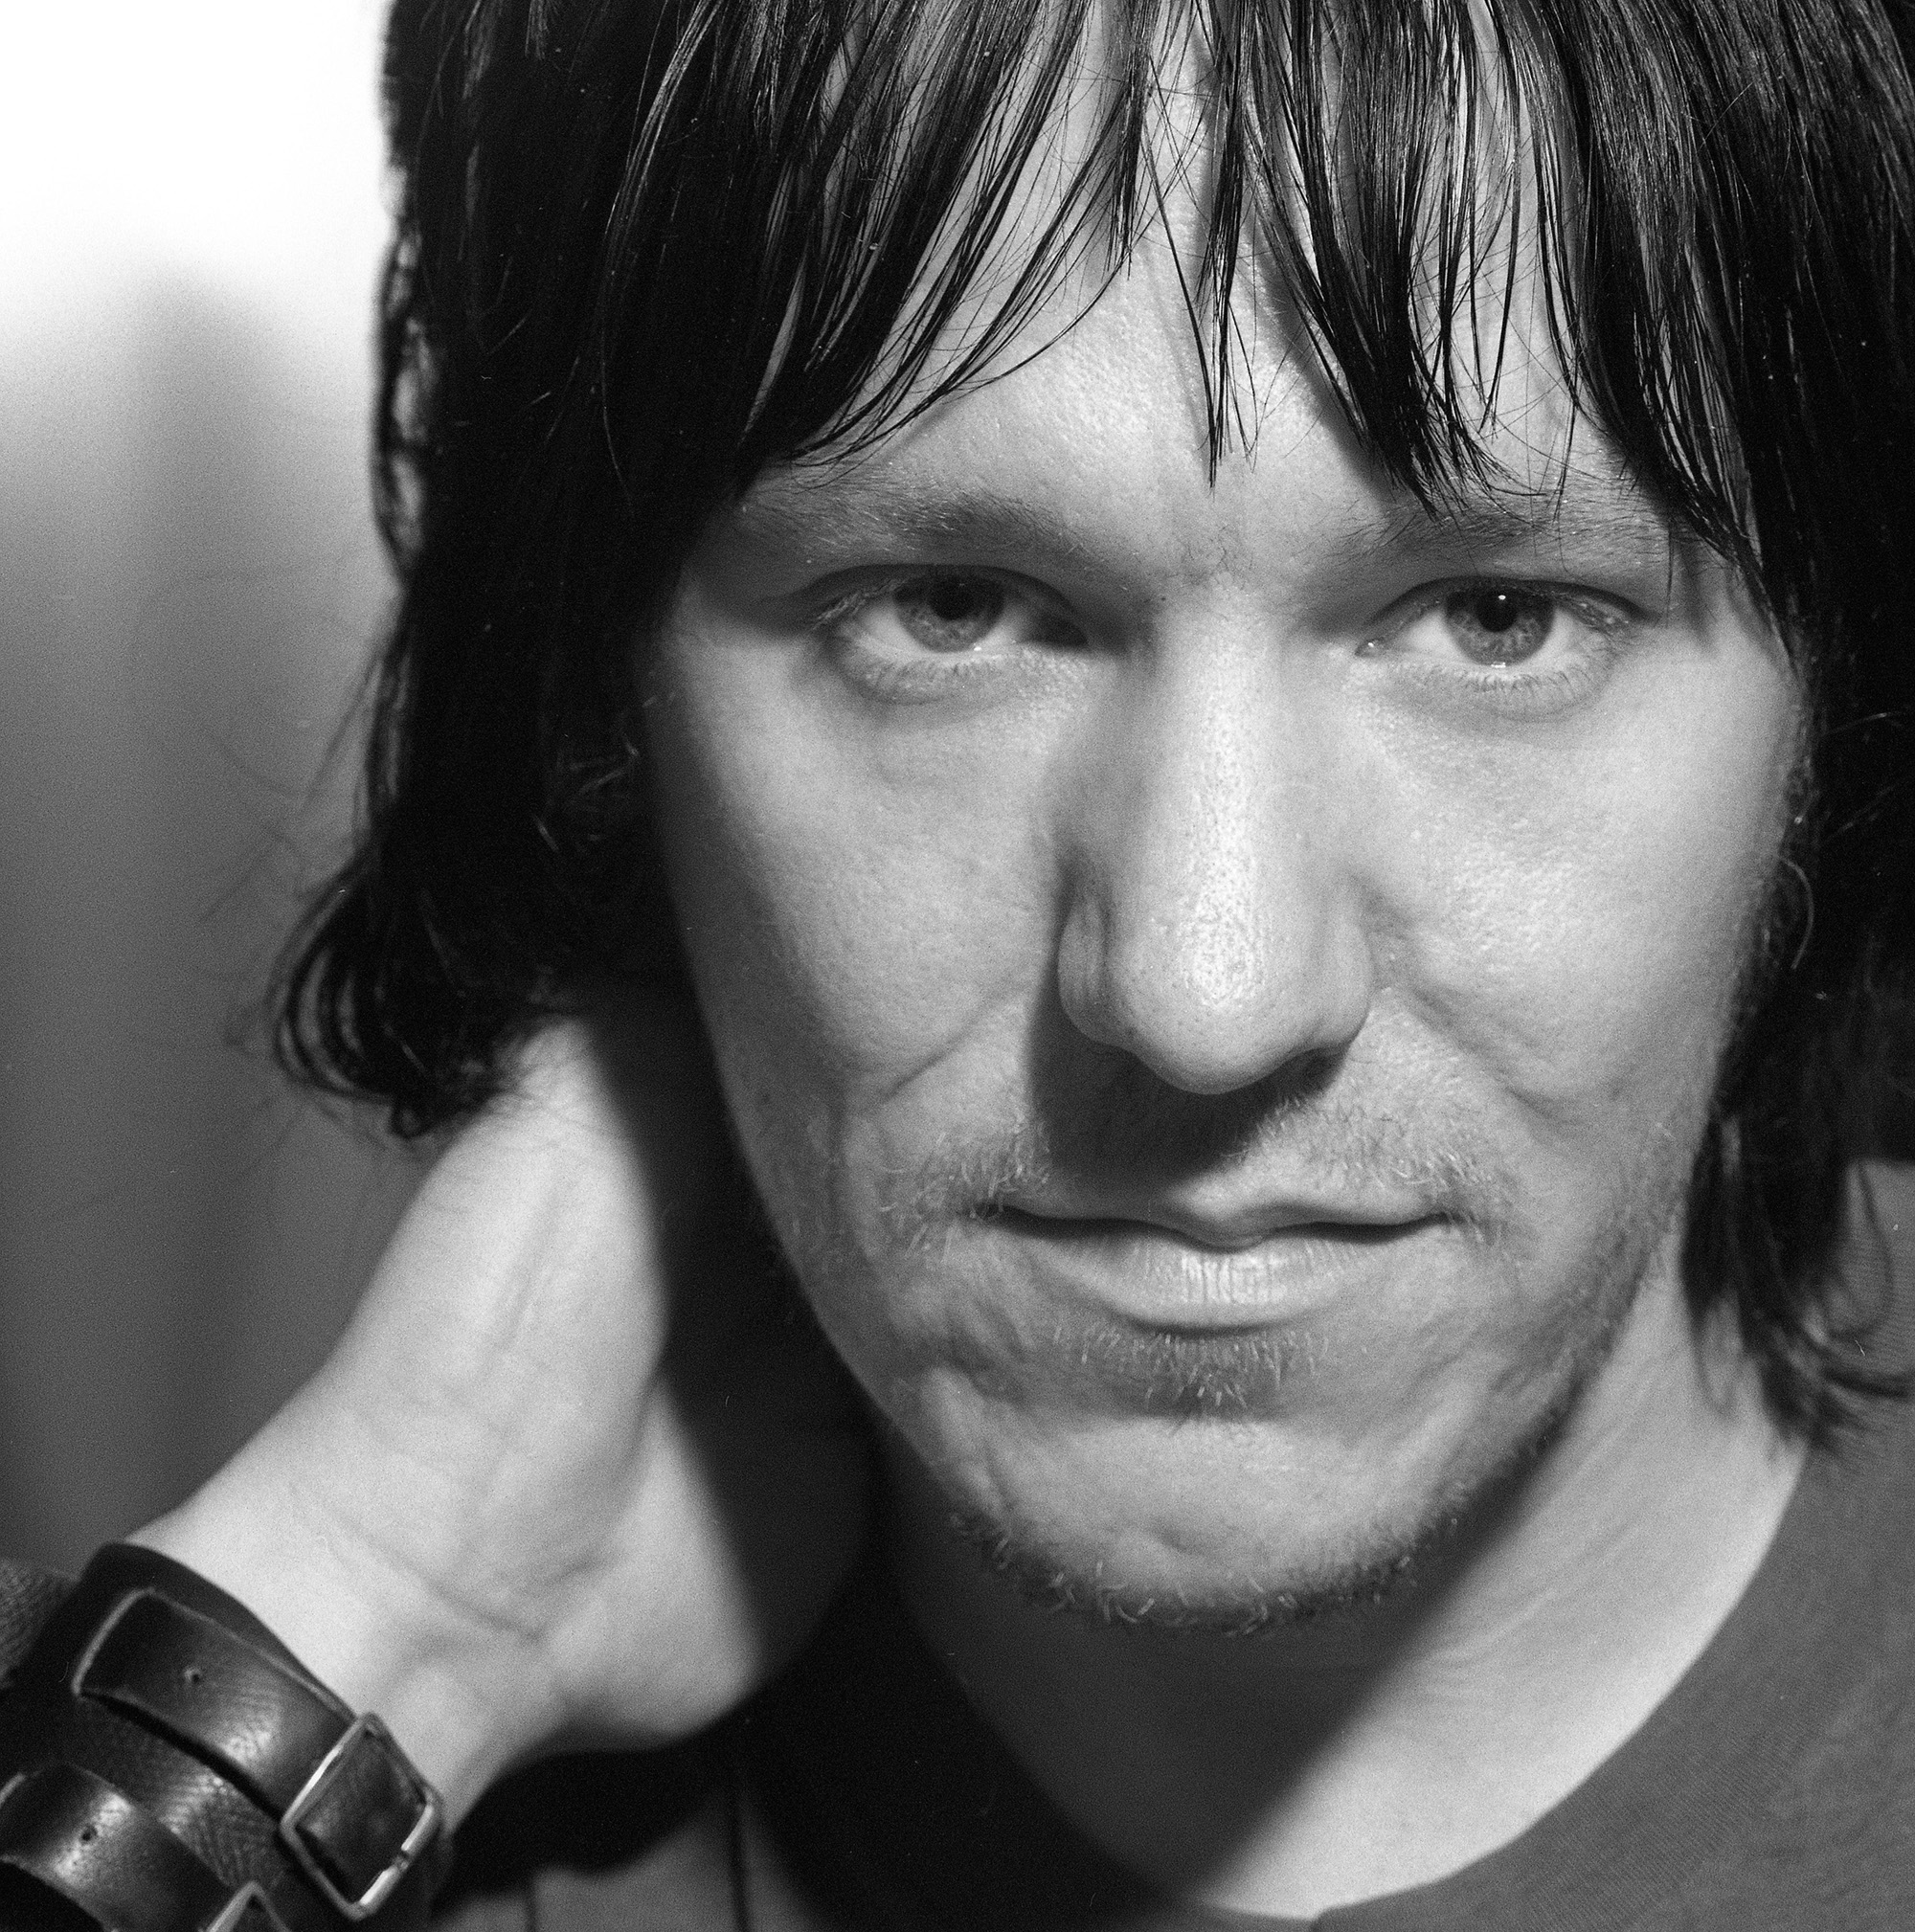 Elliott Smith, 1969-2003 [photo: Dave Tonge/Hulton Archive]